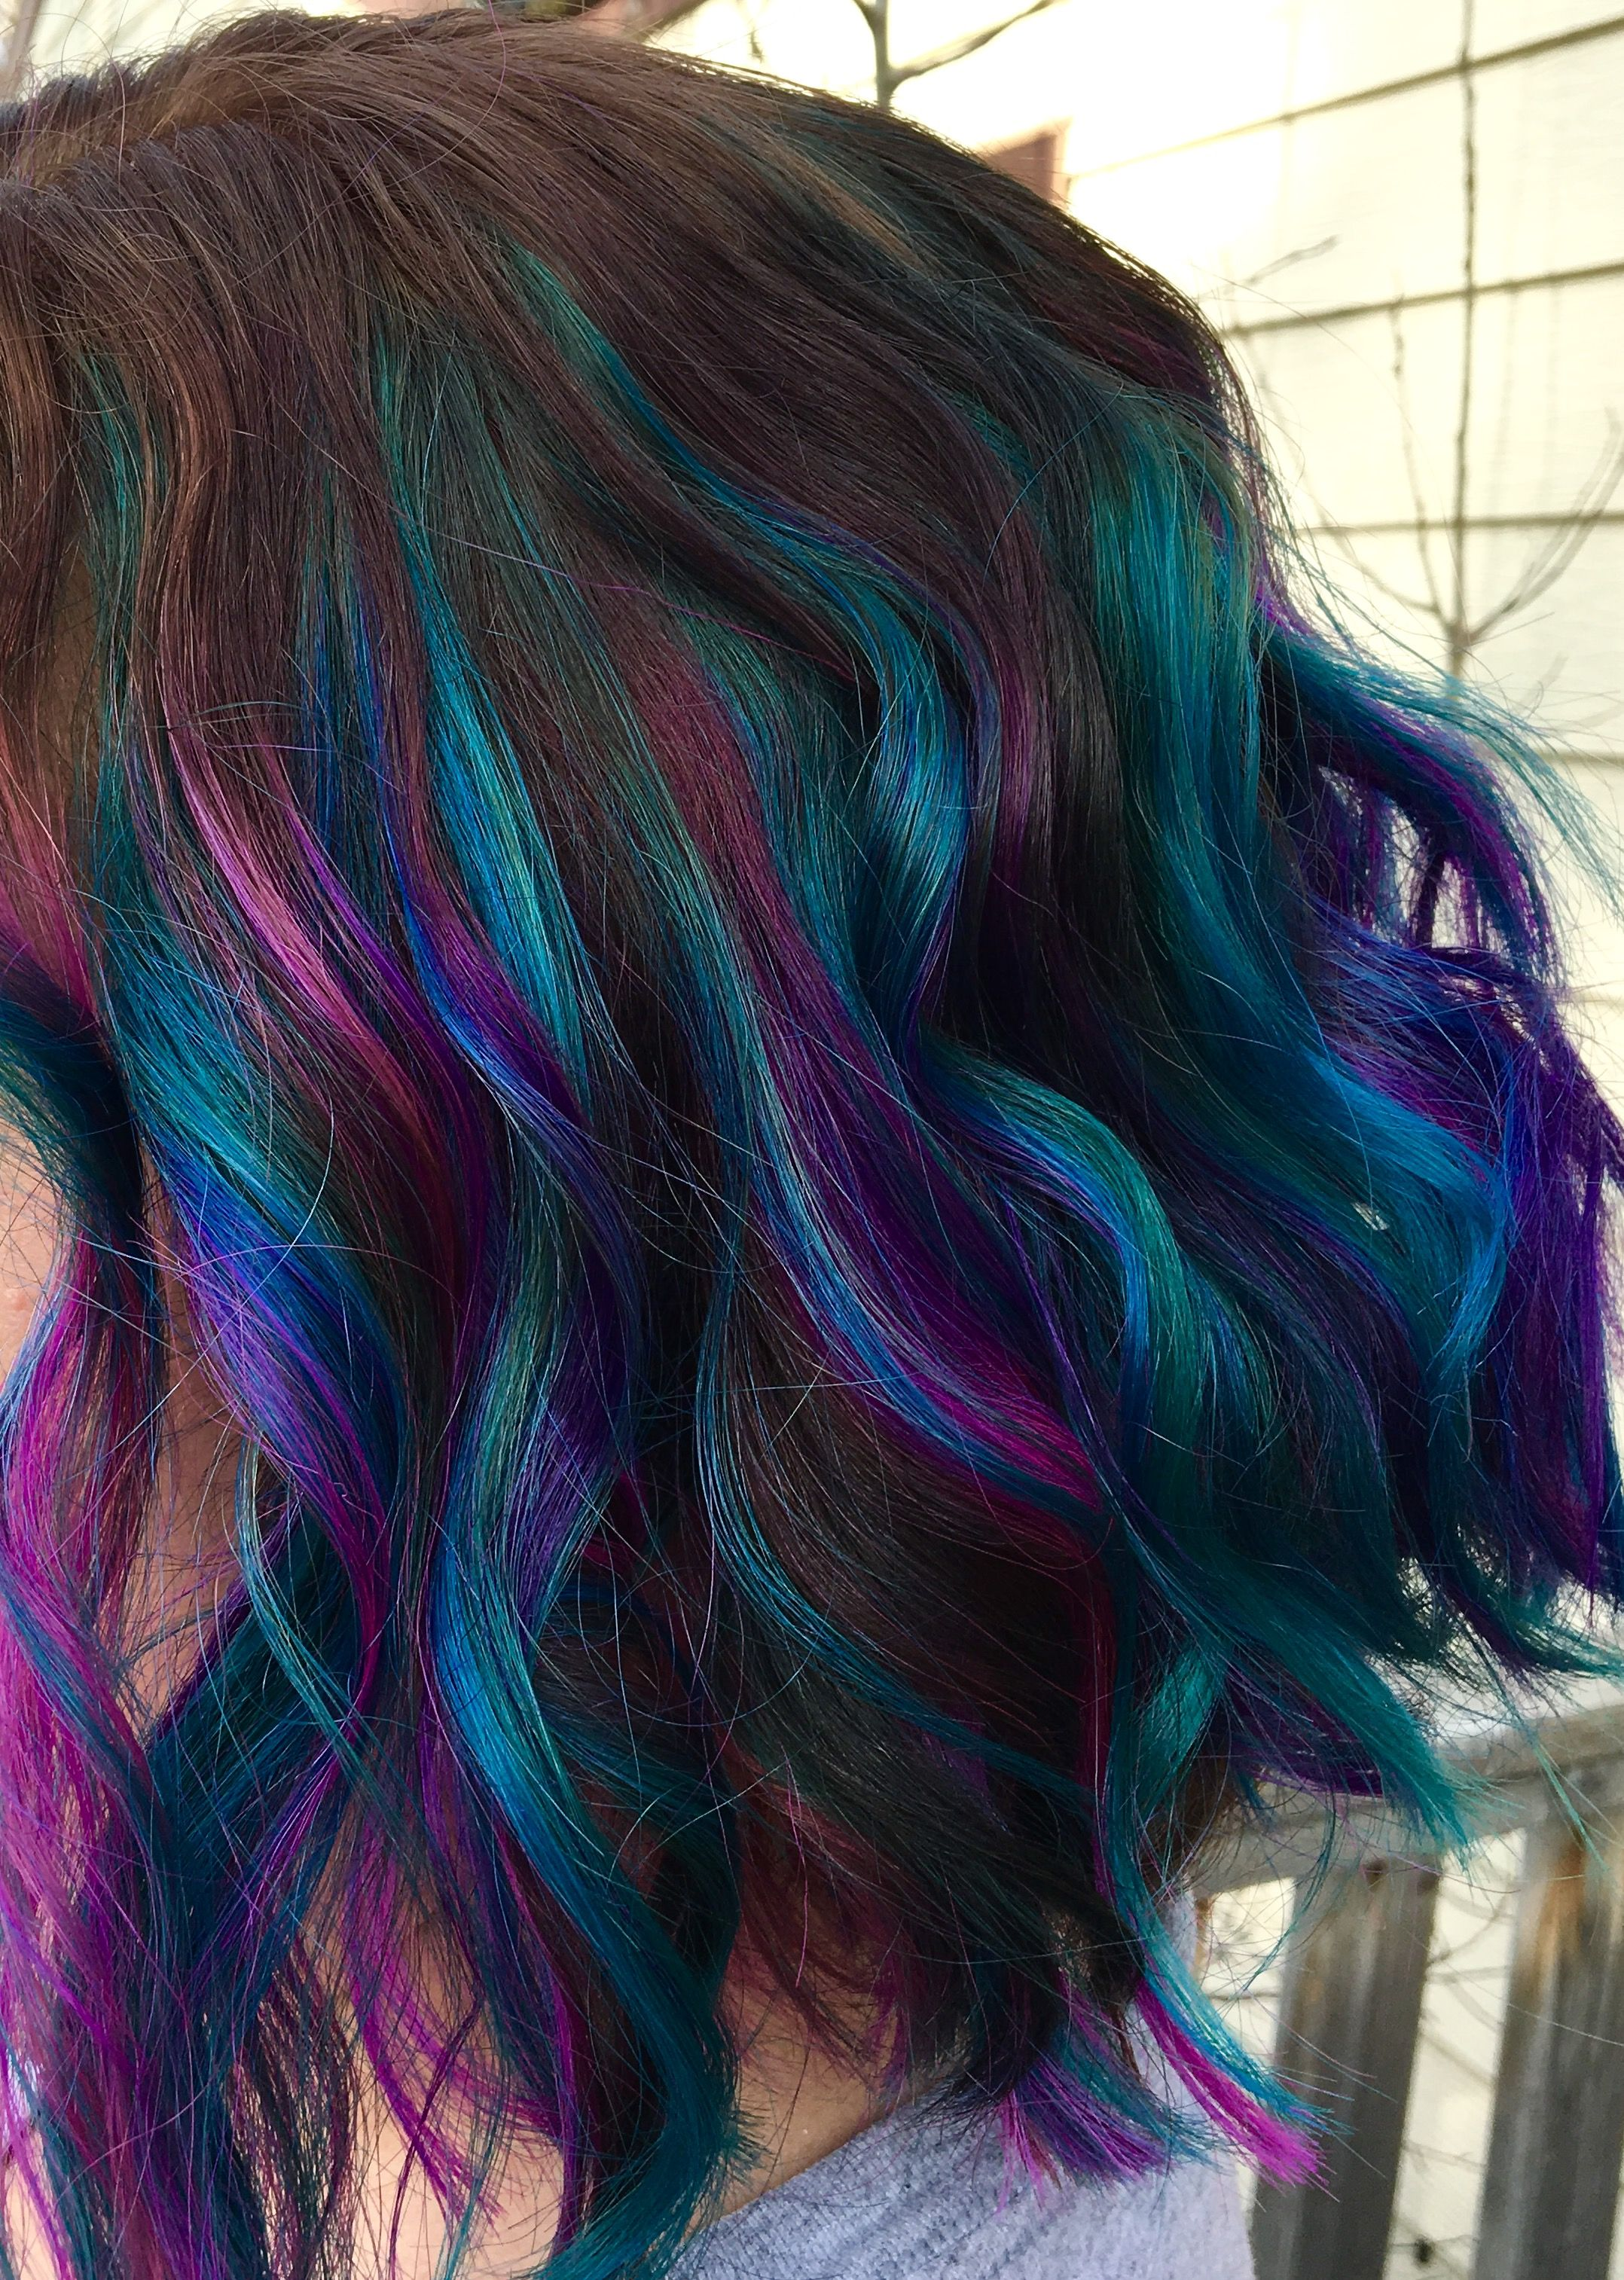 hairstyling with highlight ideas